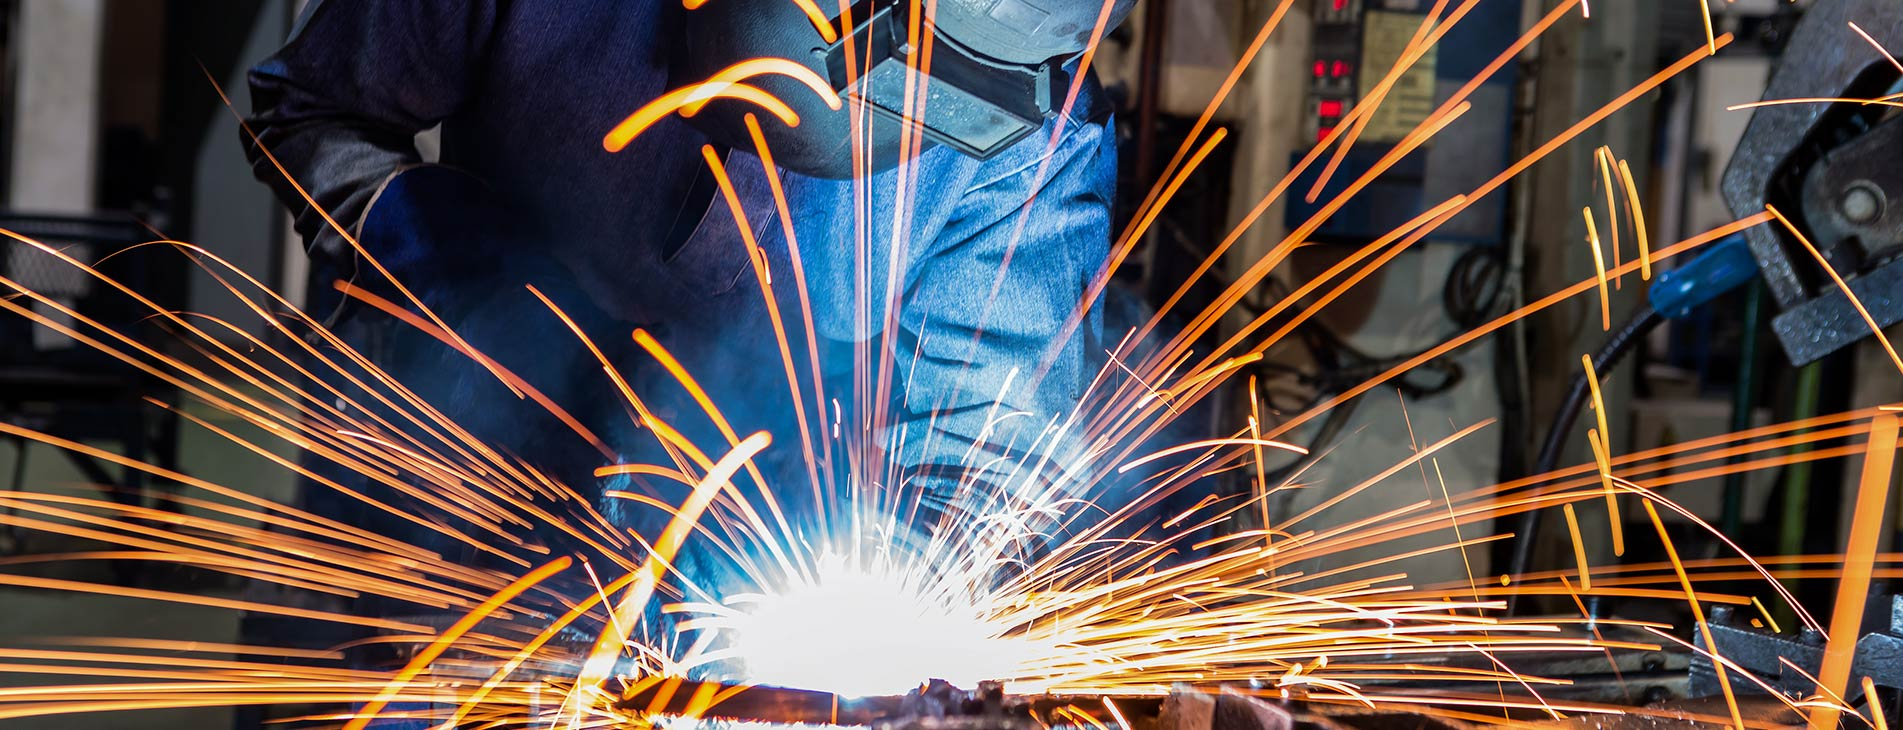 Lowering Publicity To Welding Fumes - Automotive